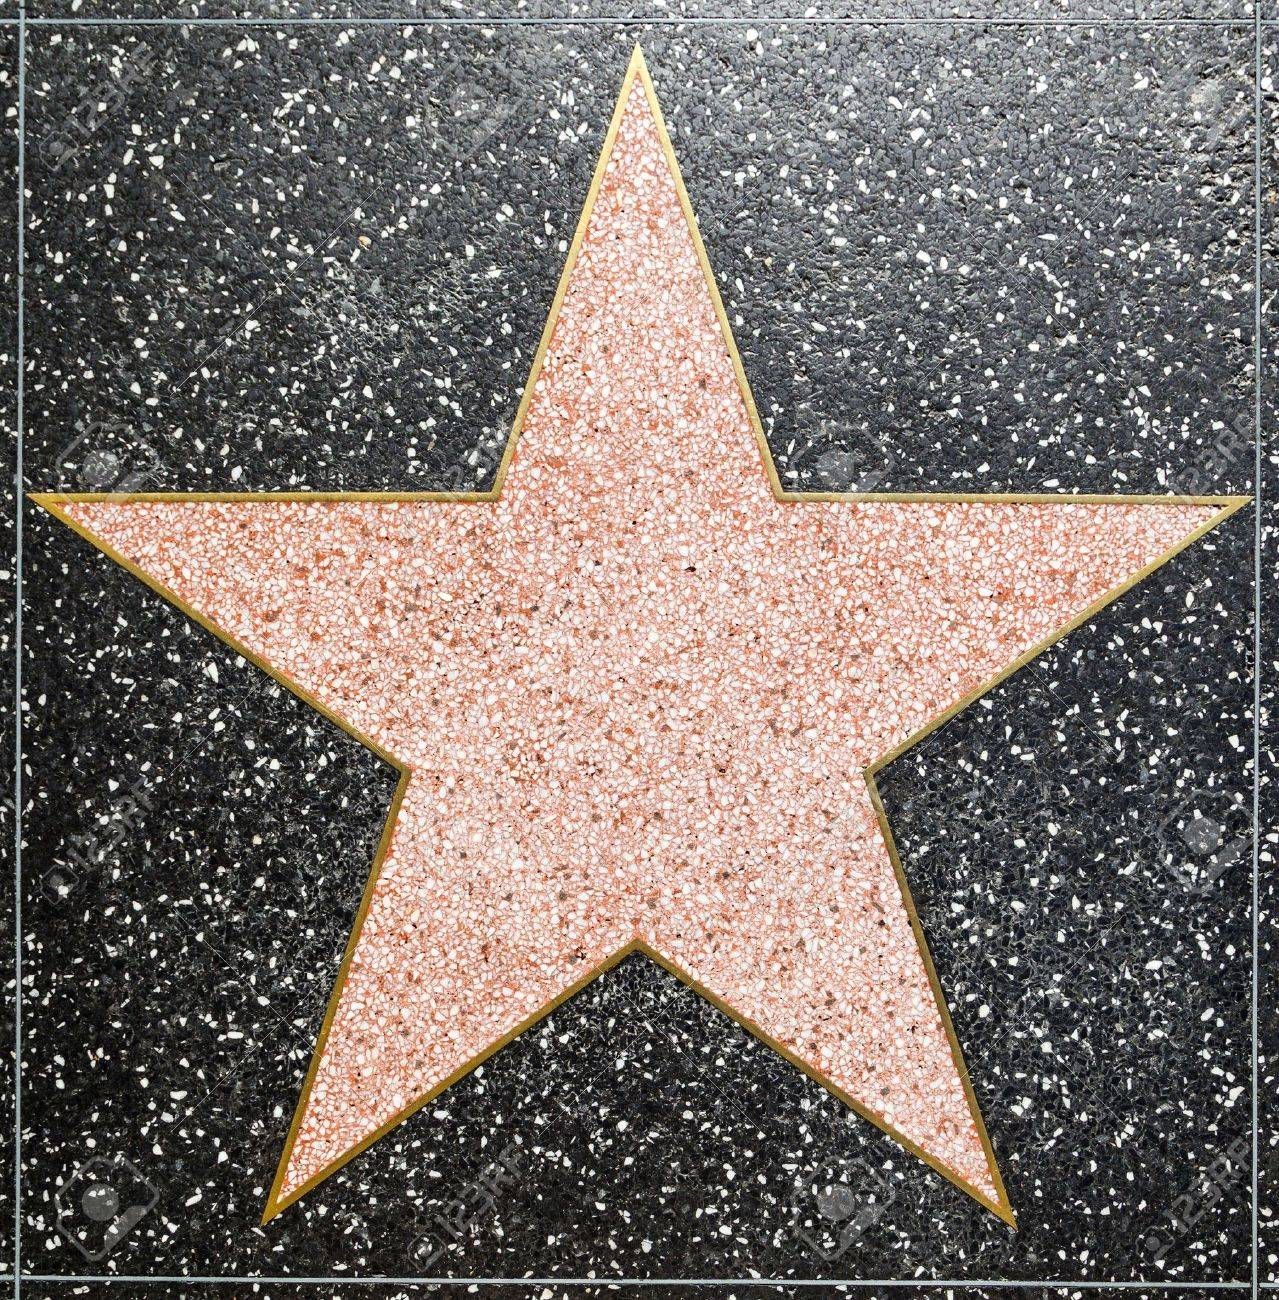 HOLLYWOOD - JUNE 26: empty star on Hollywood Walk of Fame on June 26, 2012 in Hollywood, California. This star is located on Hollywood Blvd. and is one of 2400 celebrity stars. Stock Photo - 14418403